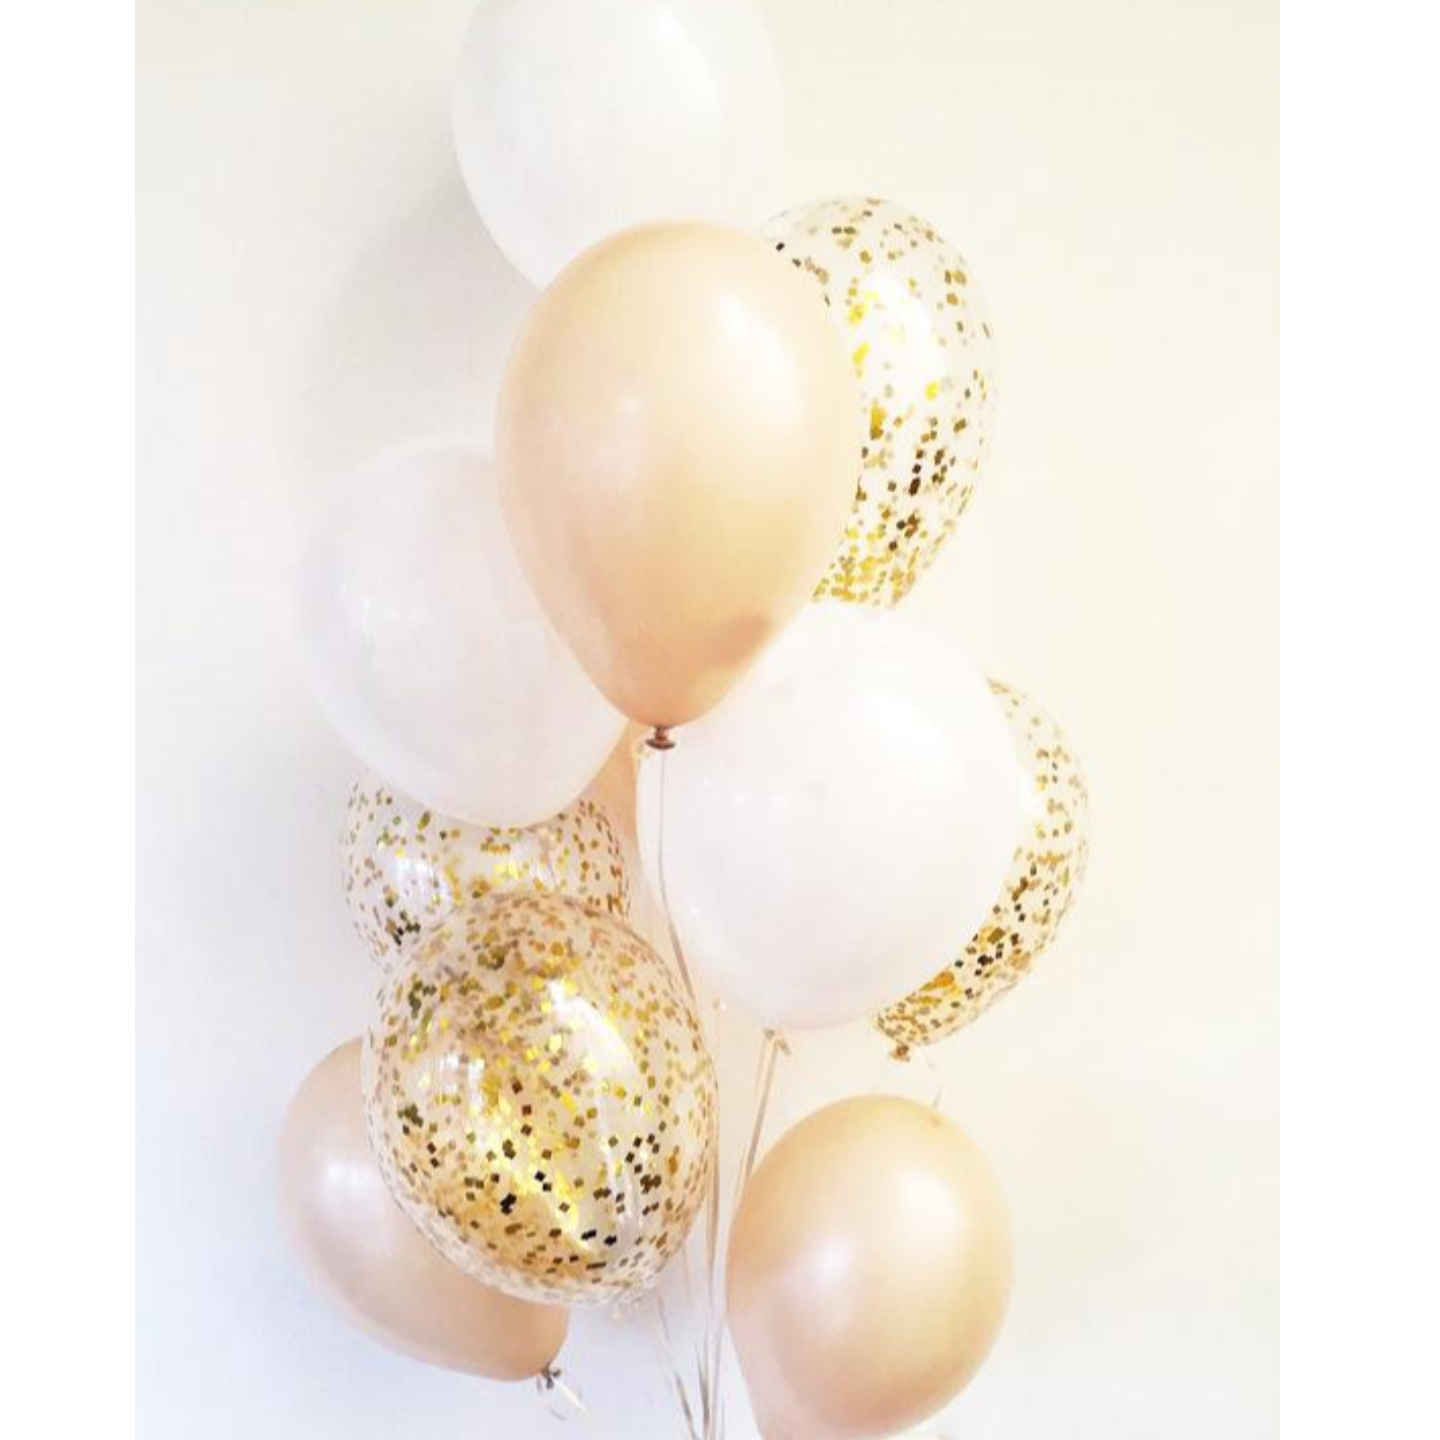 "[Helium Inflated] 12"" Confetti Balloon Bouquet"